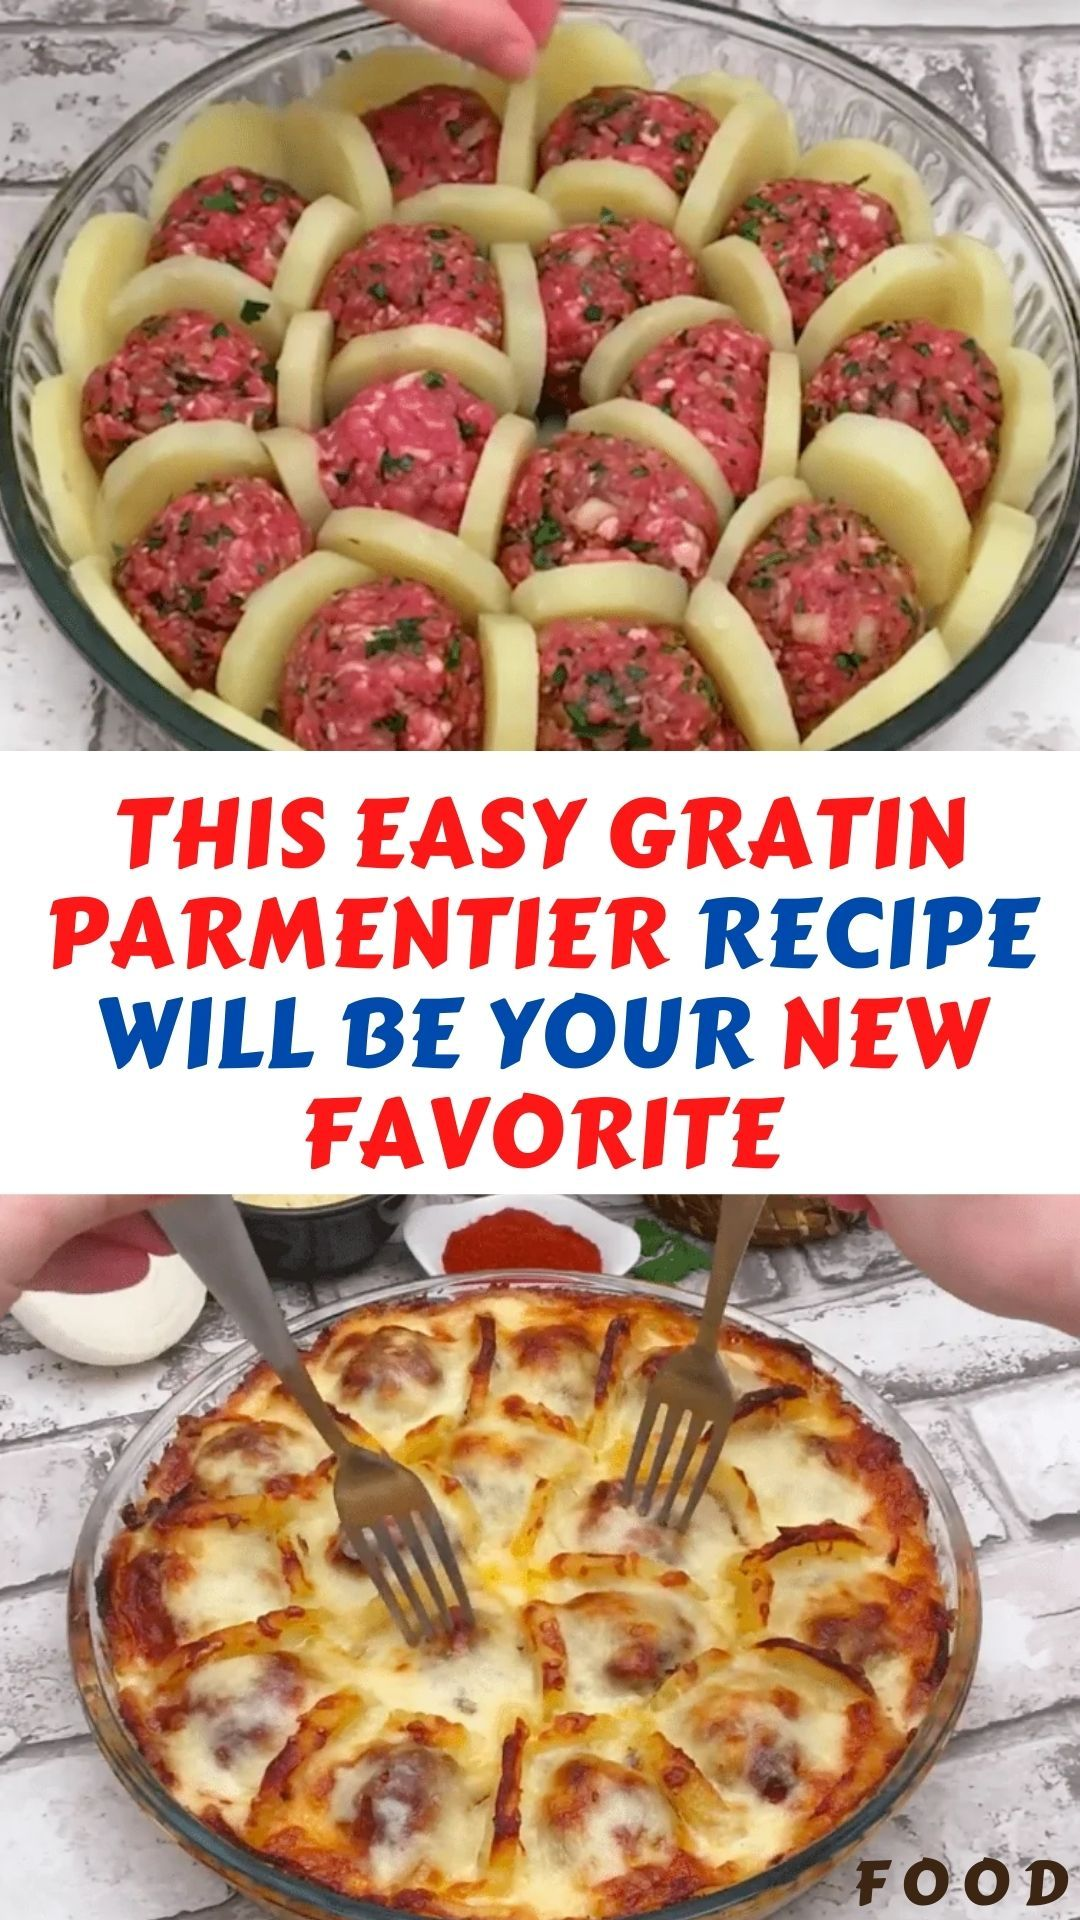 This Easy Gratin Parmentier Recipe Will Be Your Ne